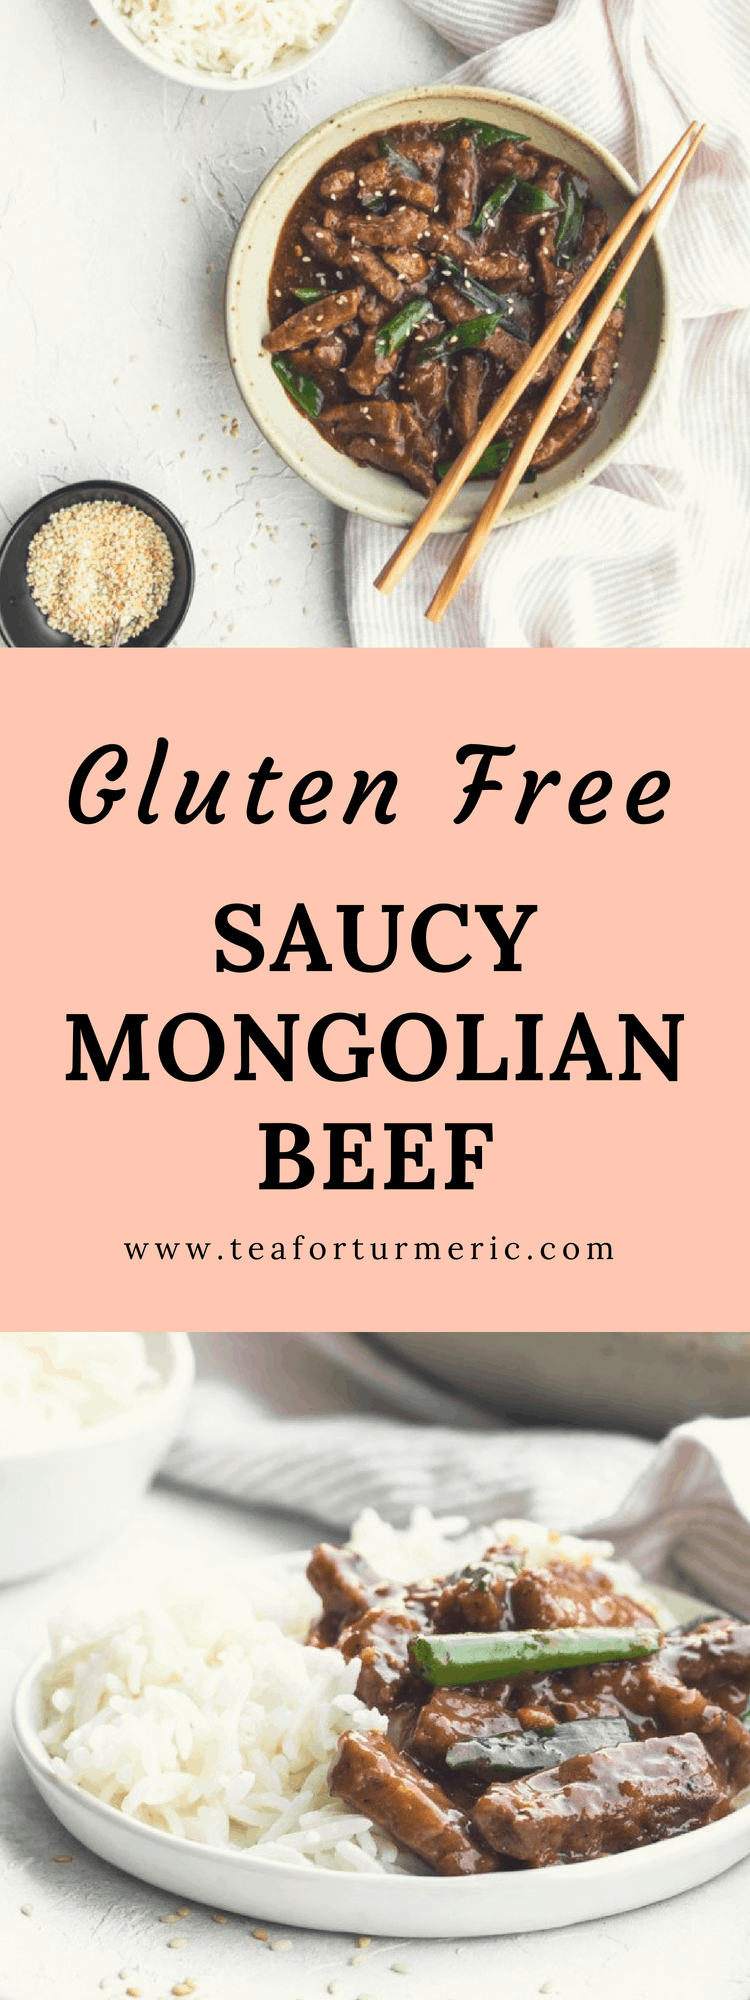 This tested-and-perfected gluten-free Mongolian Beef recipe has a little extra sauce (and flavor)! #glutenfreedinner #mongolianbeef